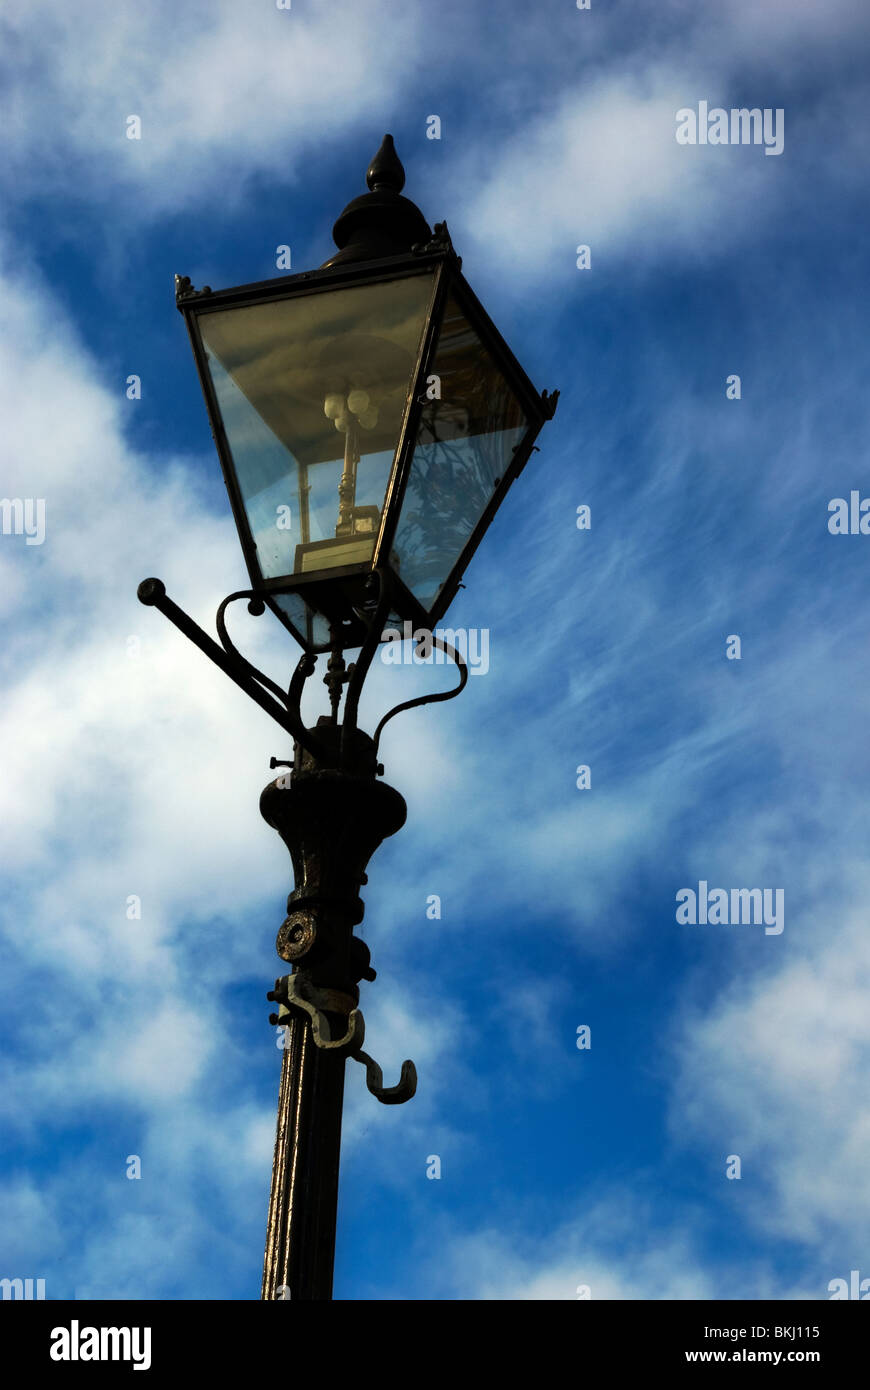 Old Fashioned Street lamp in London Stock Photo, Royalty Free ...